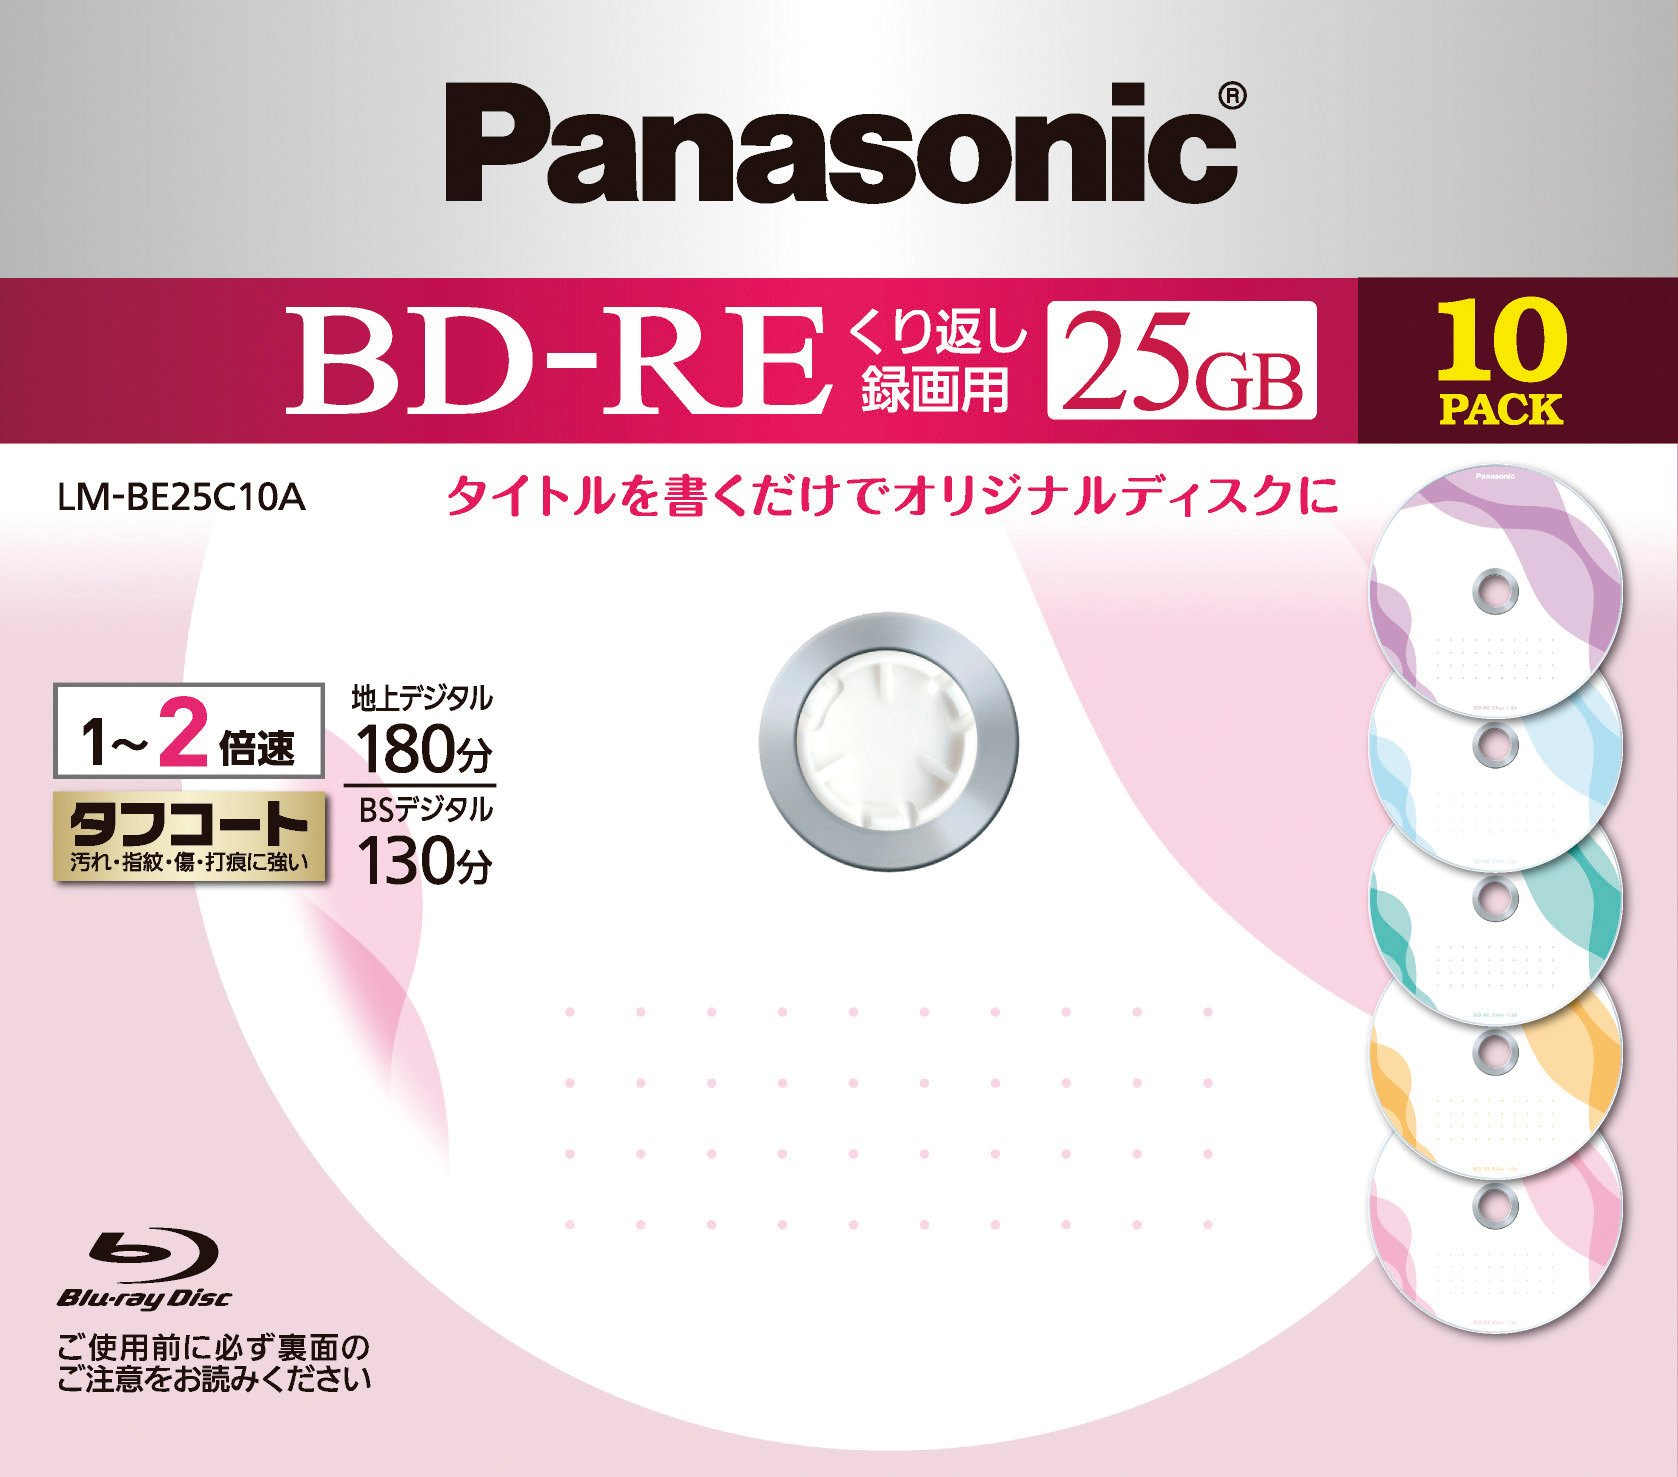 PANASONIC Blu-ray BD-RE Rewritable Disk | 25GB 2x Speed | 10 Pack AROMA II Design Disk (Japan Import)